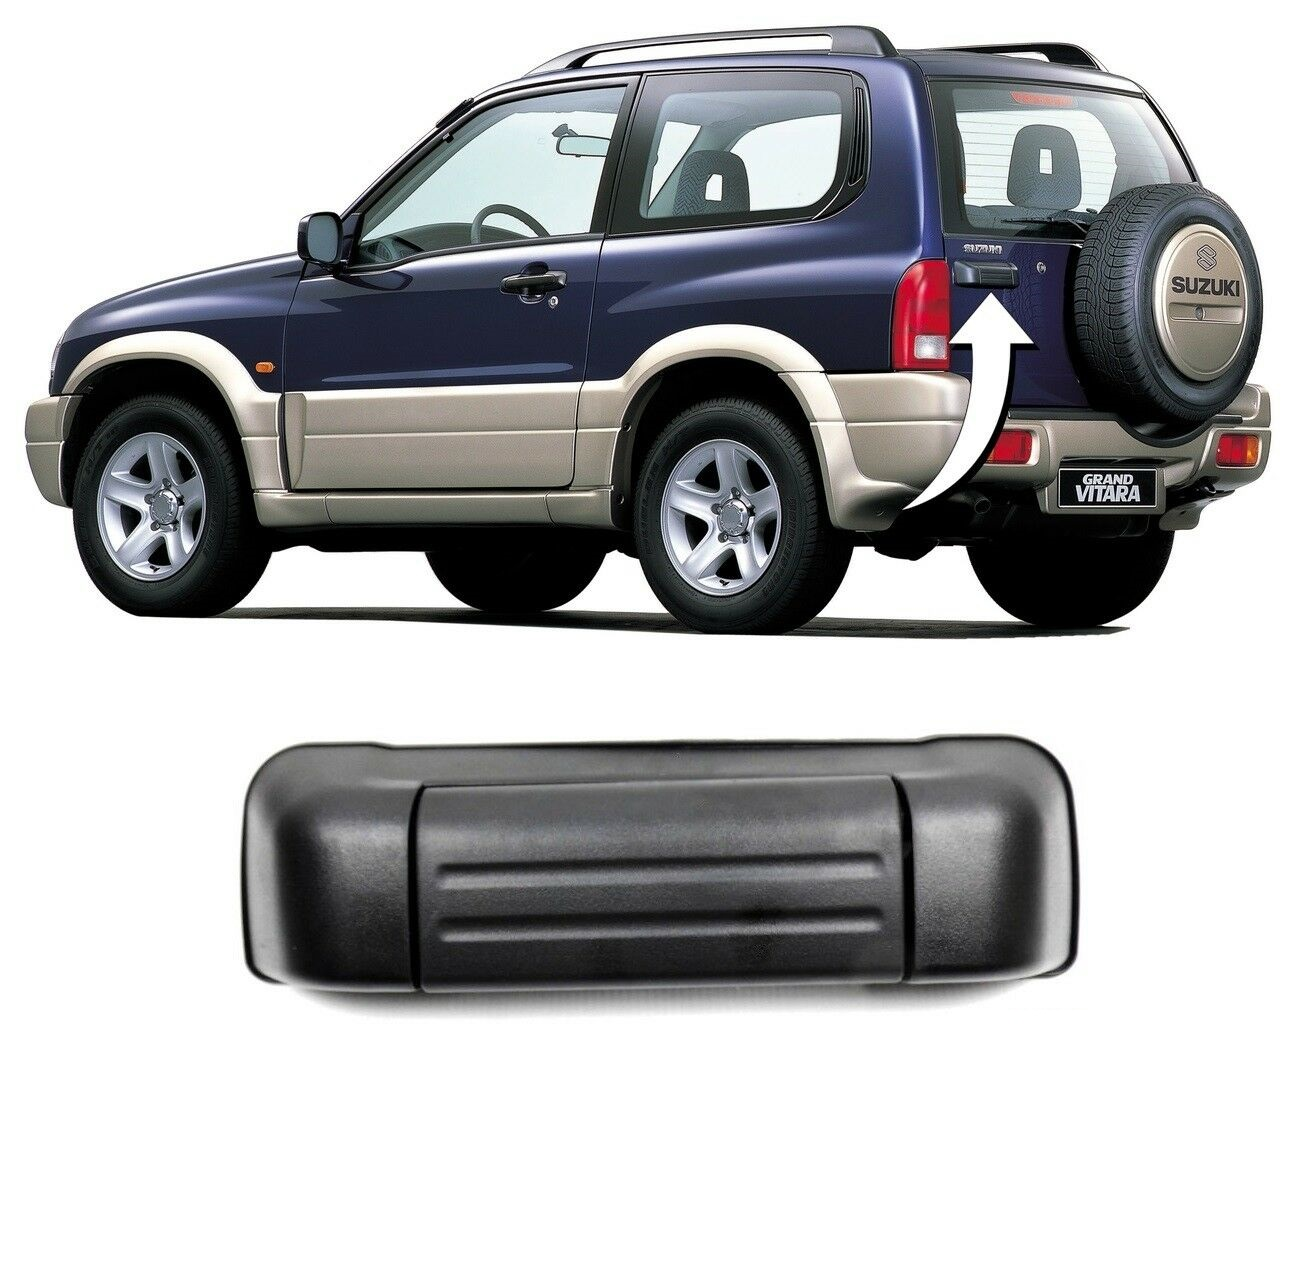 Maner usa exterior Suzuki Vitara Grand (Ft/Gt), 09.1997-09.2005, negru, usa spate / haion